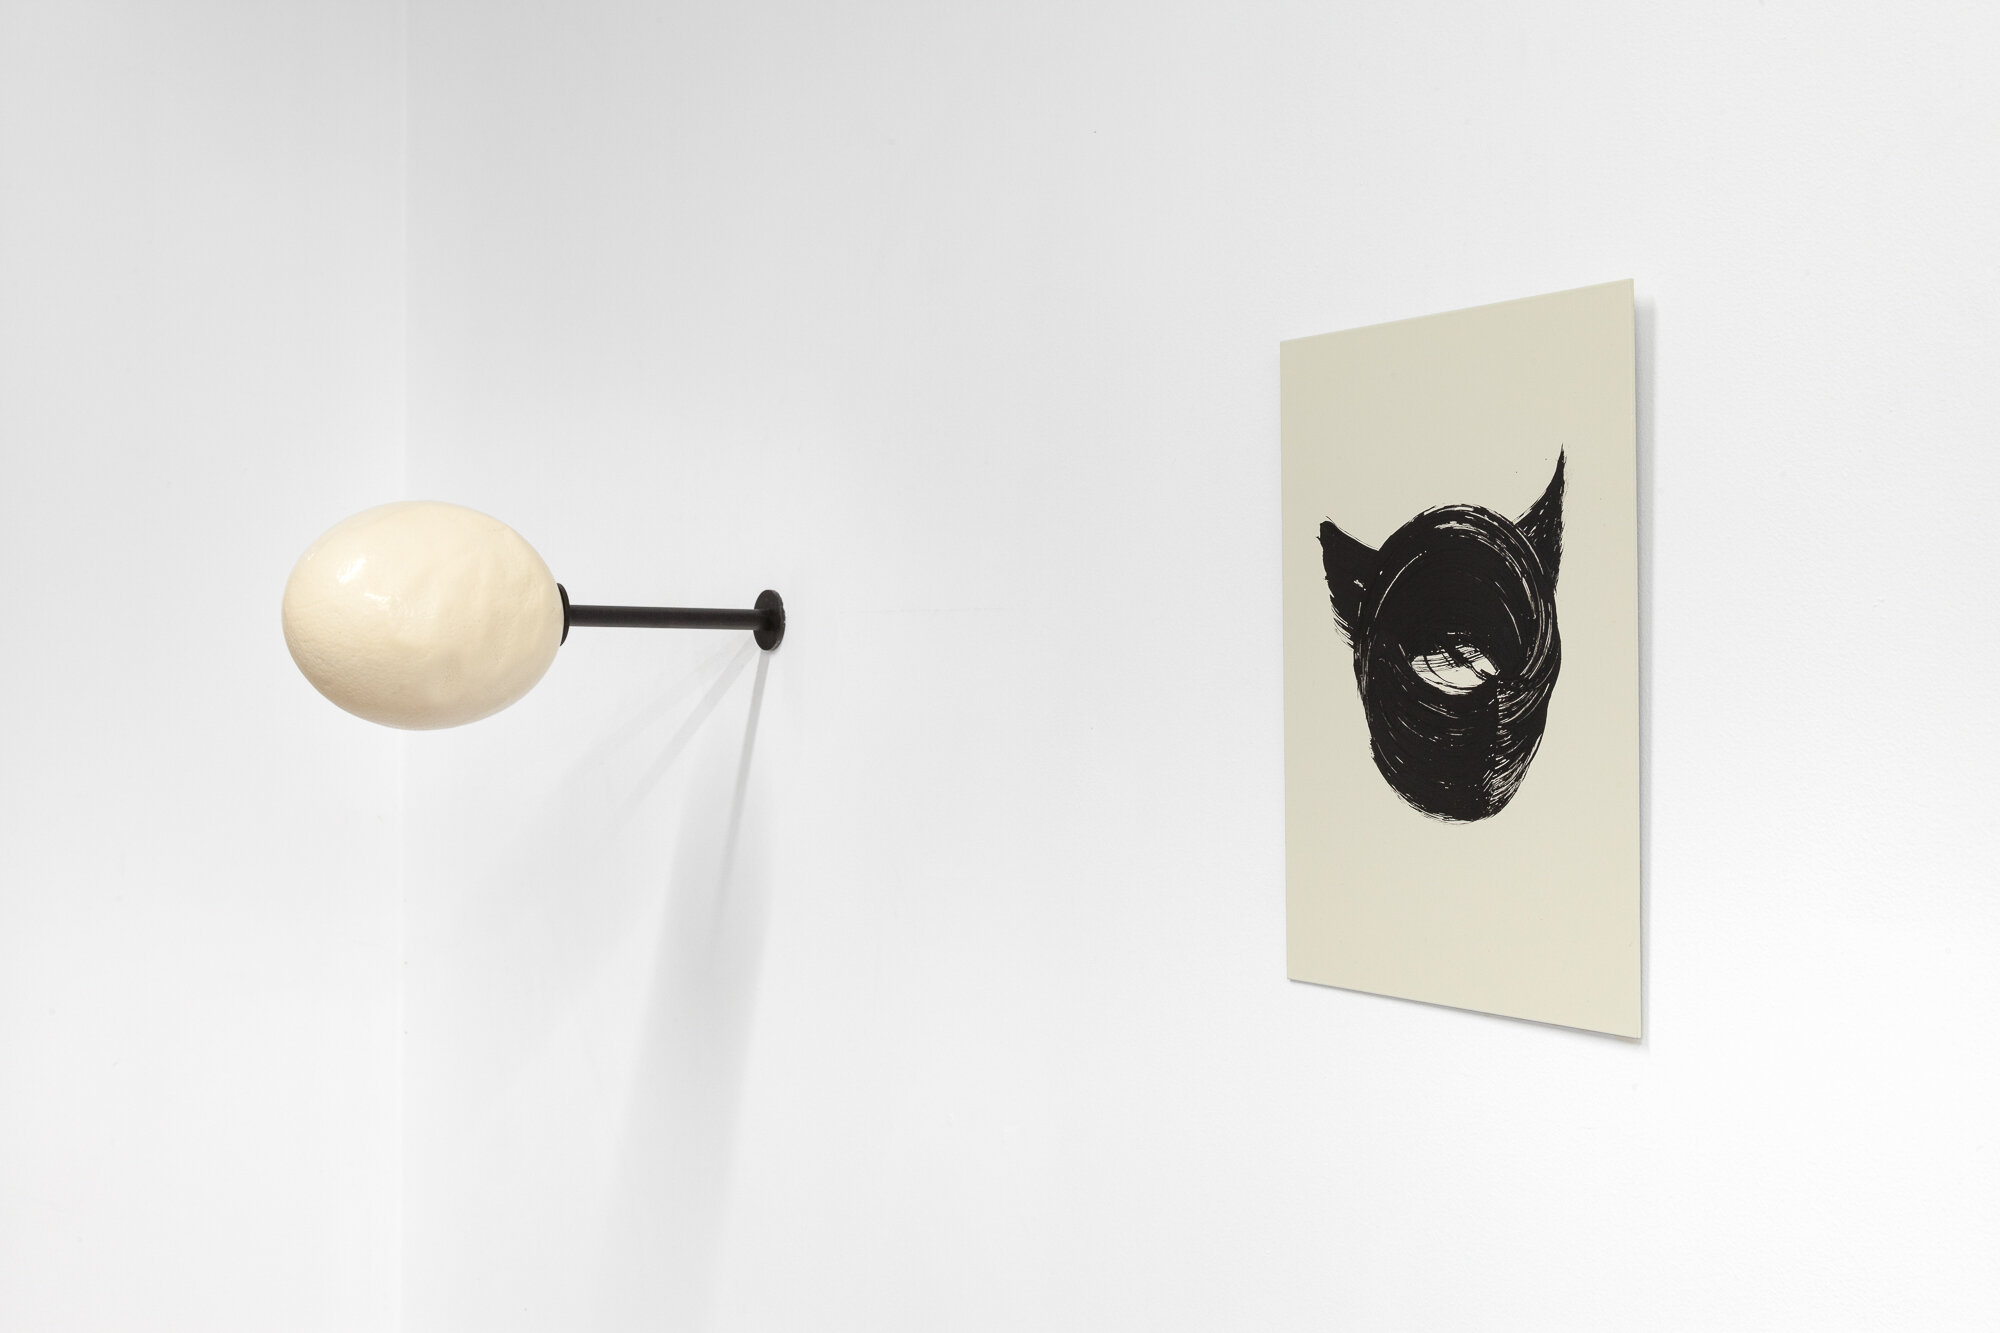 Image: Sarah Ortmeyer,  PION  and  DIABOLUS , 2019. Ceramic egg with metal stand / Gesso on metal.  INFERNO CHICAGO , curated by Stephanie Cristello, Chicago Manual Style (Chicago, IL). Copyright Sarah Ortmeyer. Courtesy of Dvir, Tel Aviv / Brussels. Photographer: Robert Chase Heishman.